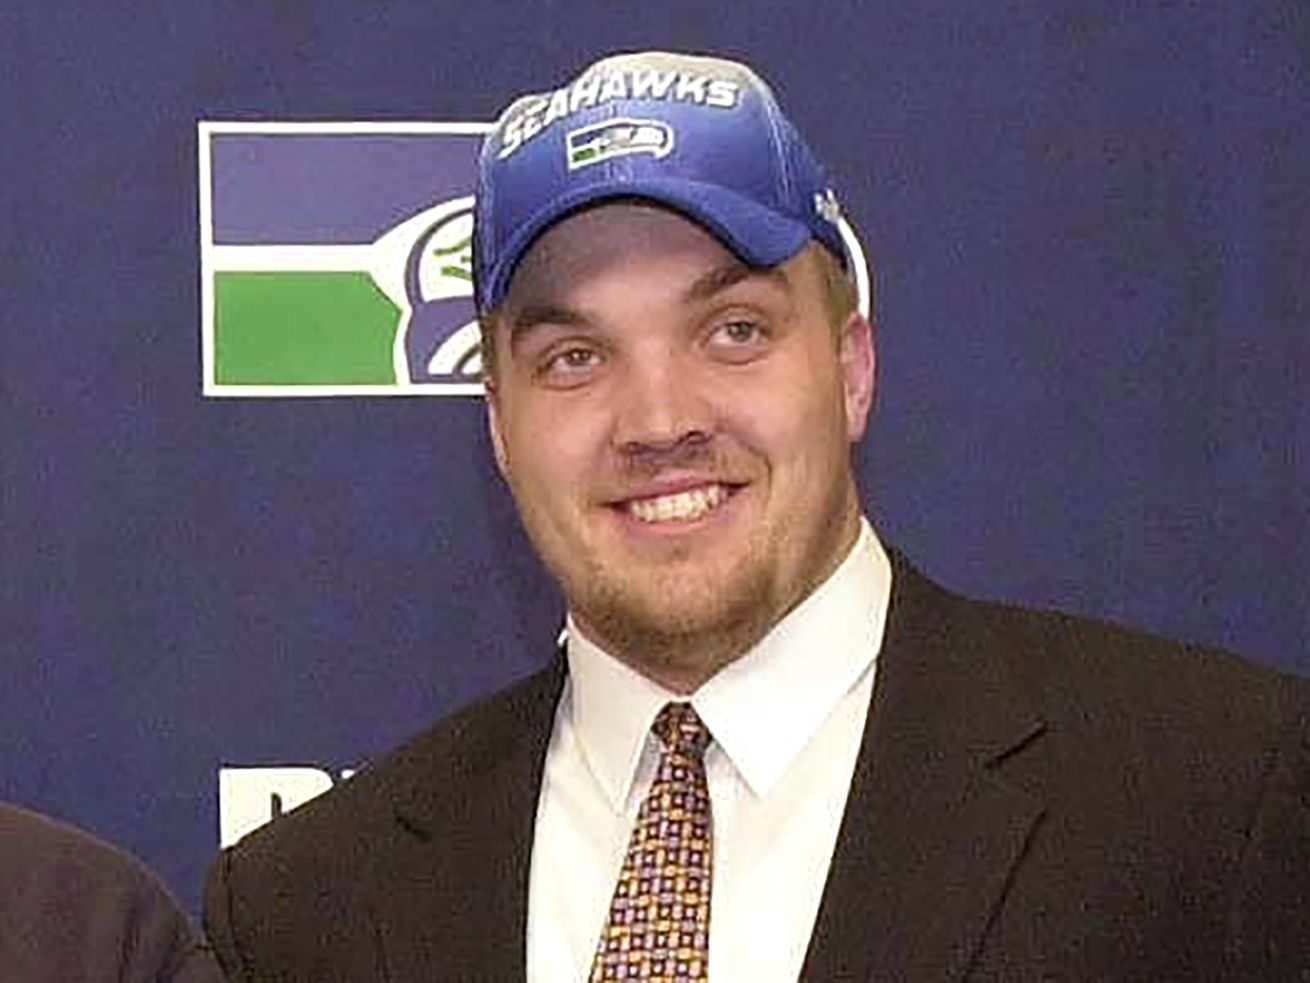 Chris McIntosh, shown in a file photo from 2000, will become the new athletic director at Wisconsin.